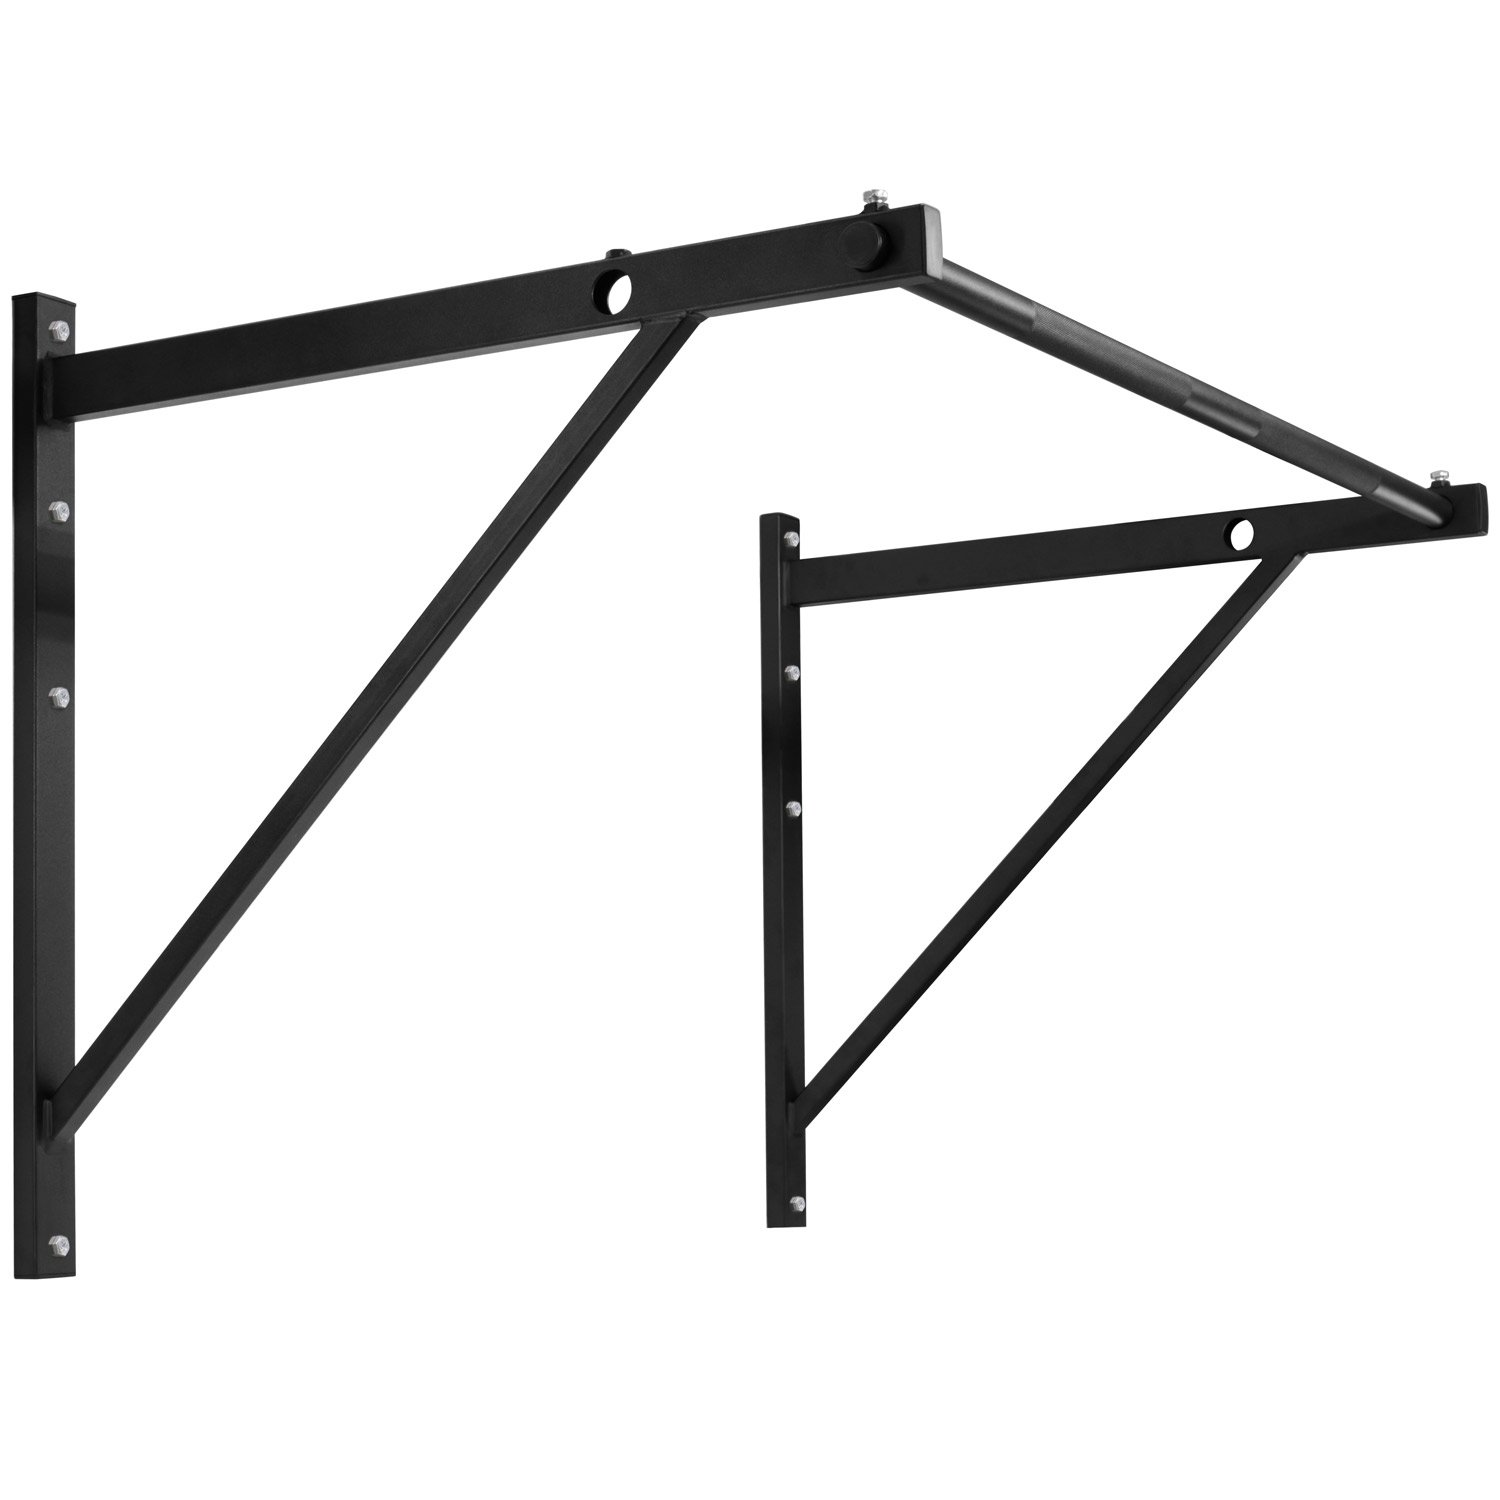 Yes4All Wall Mounted Pull Up Bar for Crossfit Training – Chin Up Bar/Pull Up Bar Wall Mount – Support up to 500 lbs (Black)